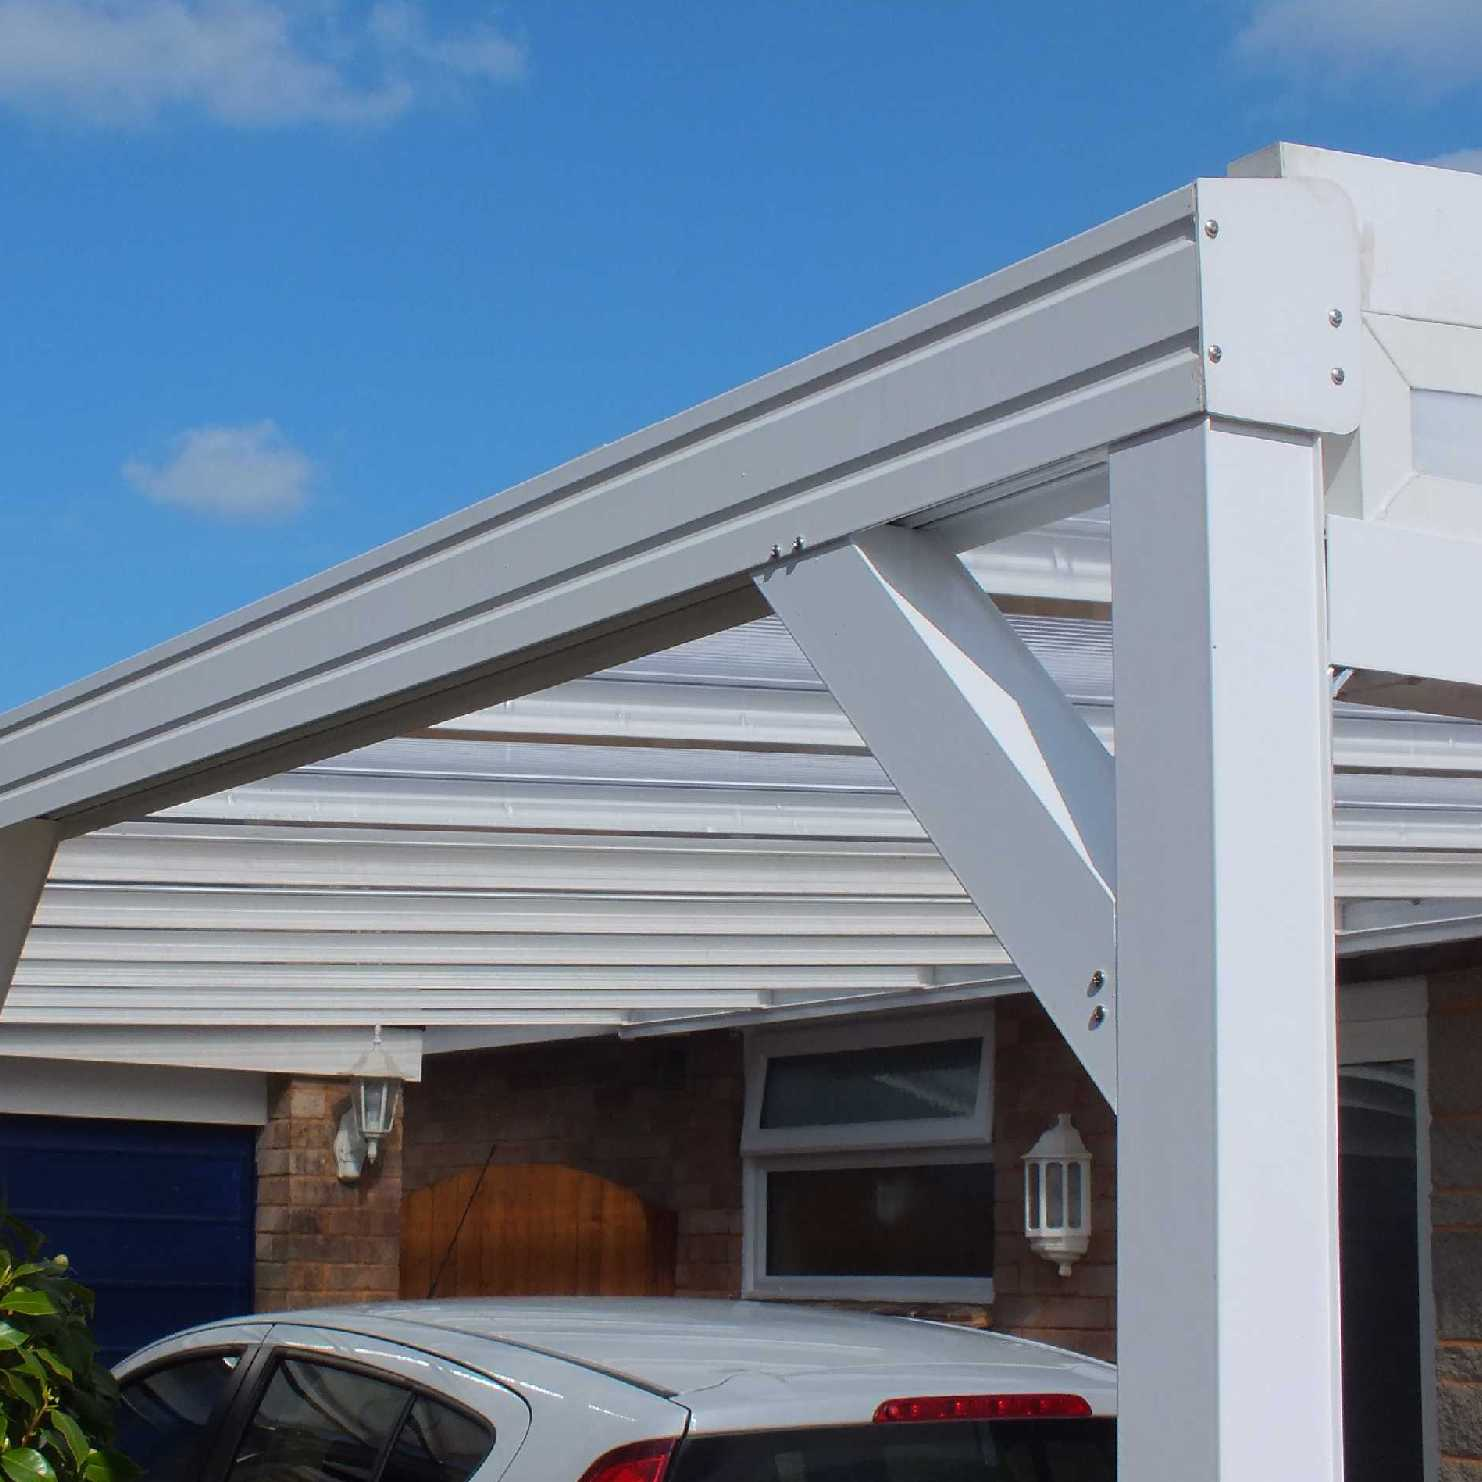 Great deals on Omega Smart Lean-To Canopy with 16mm Polycarbonate Glazing - 12.0m (W) x 1.5m (P), (5) Supporting Posts